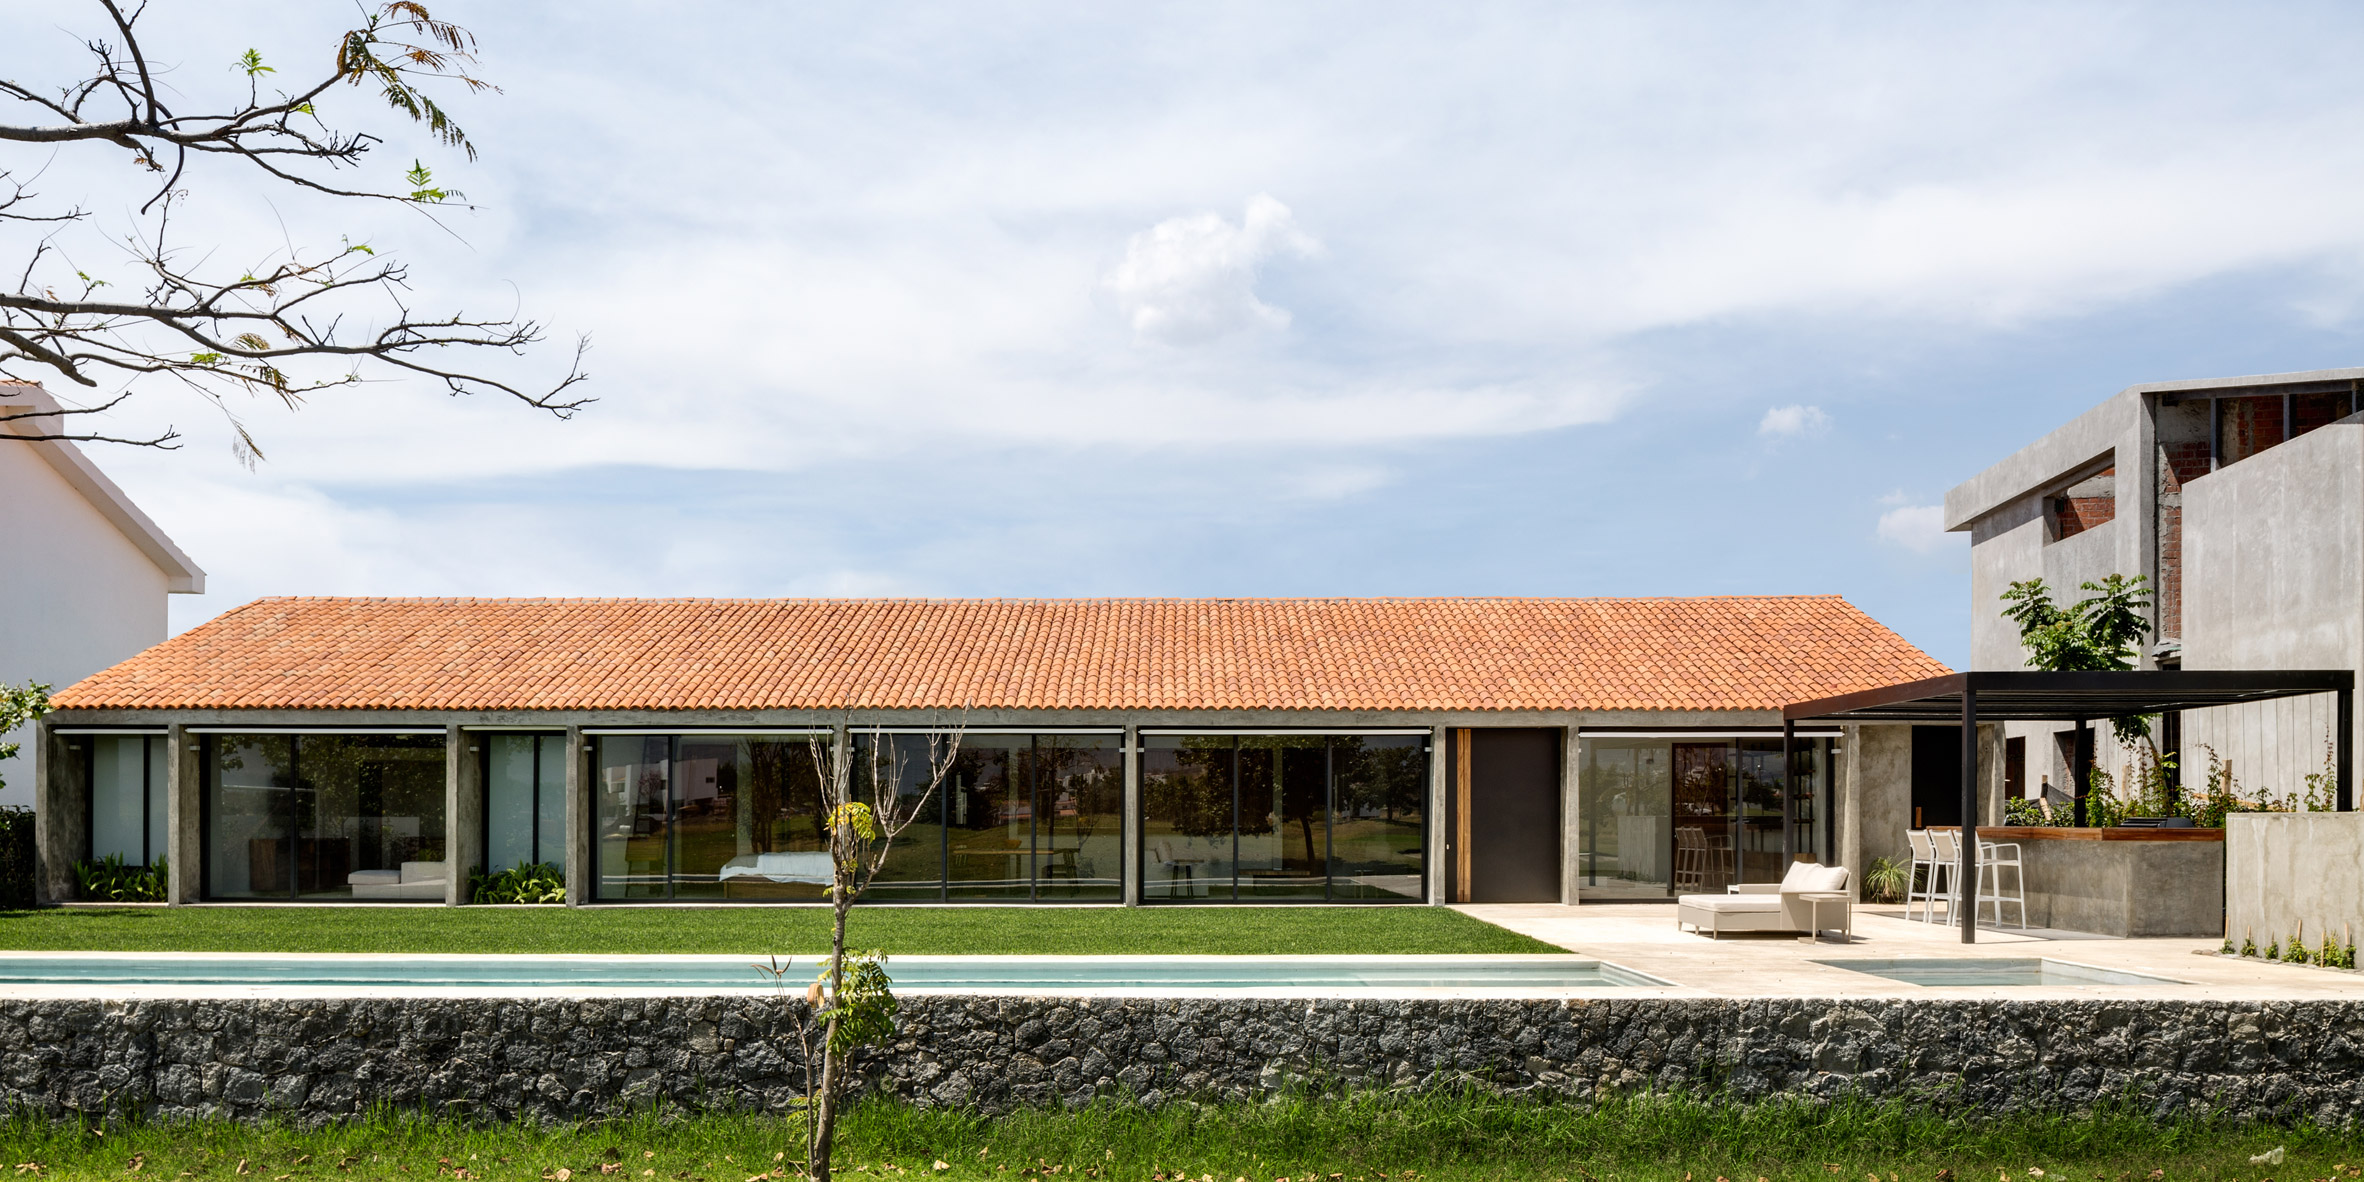 DCPP designs low-lying concrete and glass weekend retreat at Mexican country club